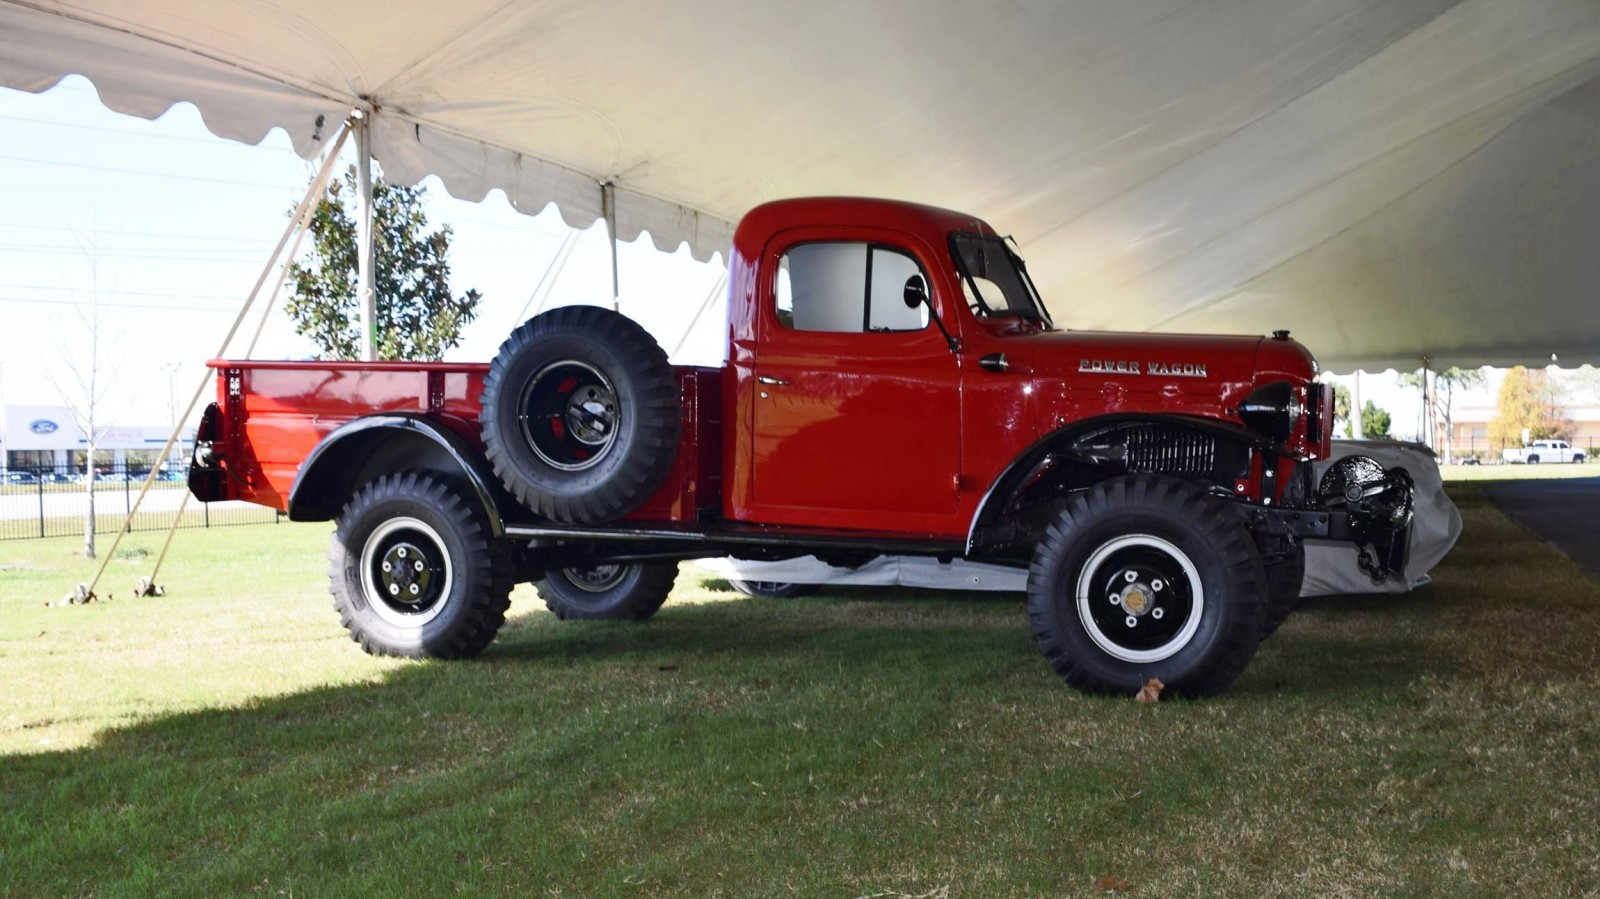 1961 Dodge POWER WAGON WM300 Pickup - An American Hero: As-New, In